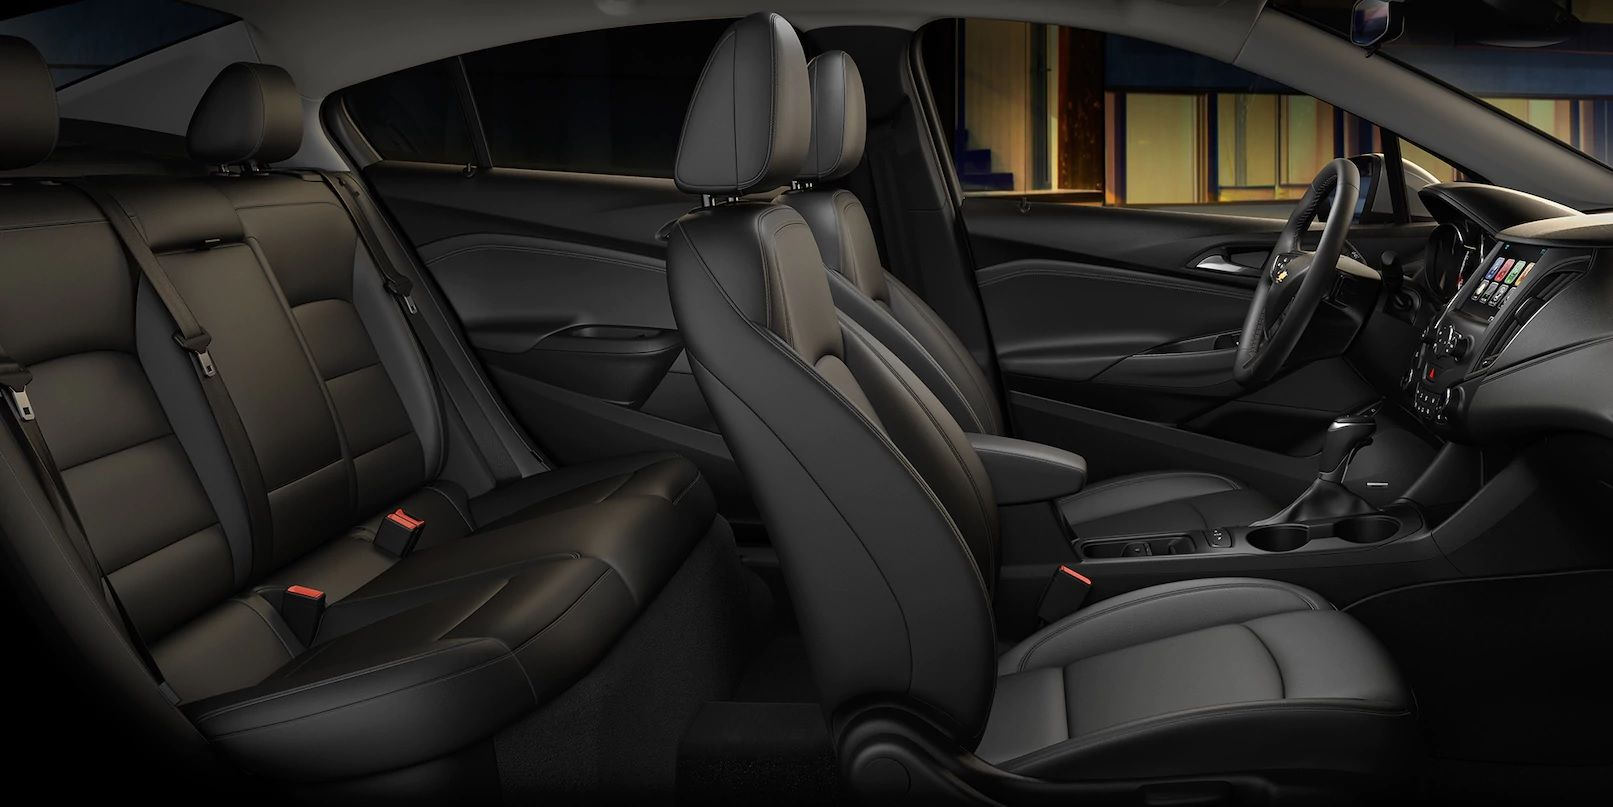 2019 Chevrolet Cruze Interior More Features At Westside